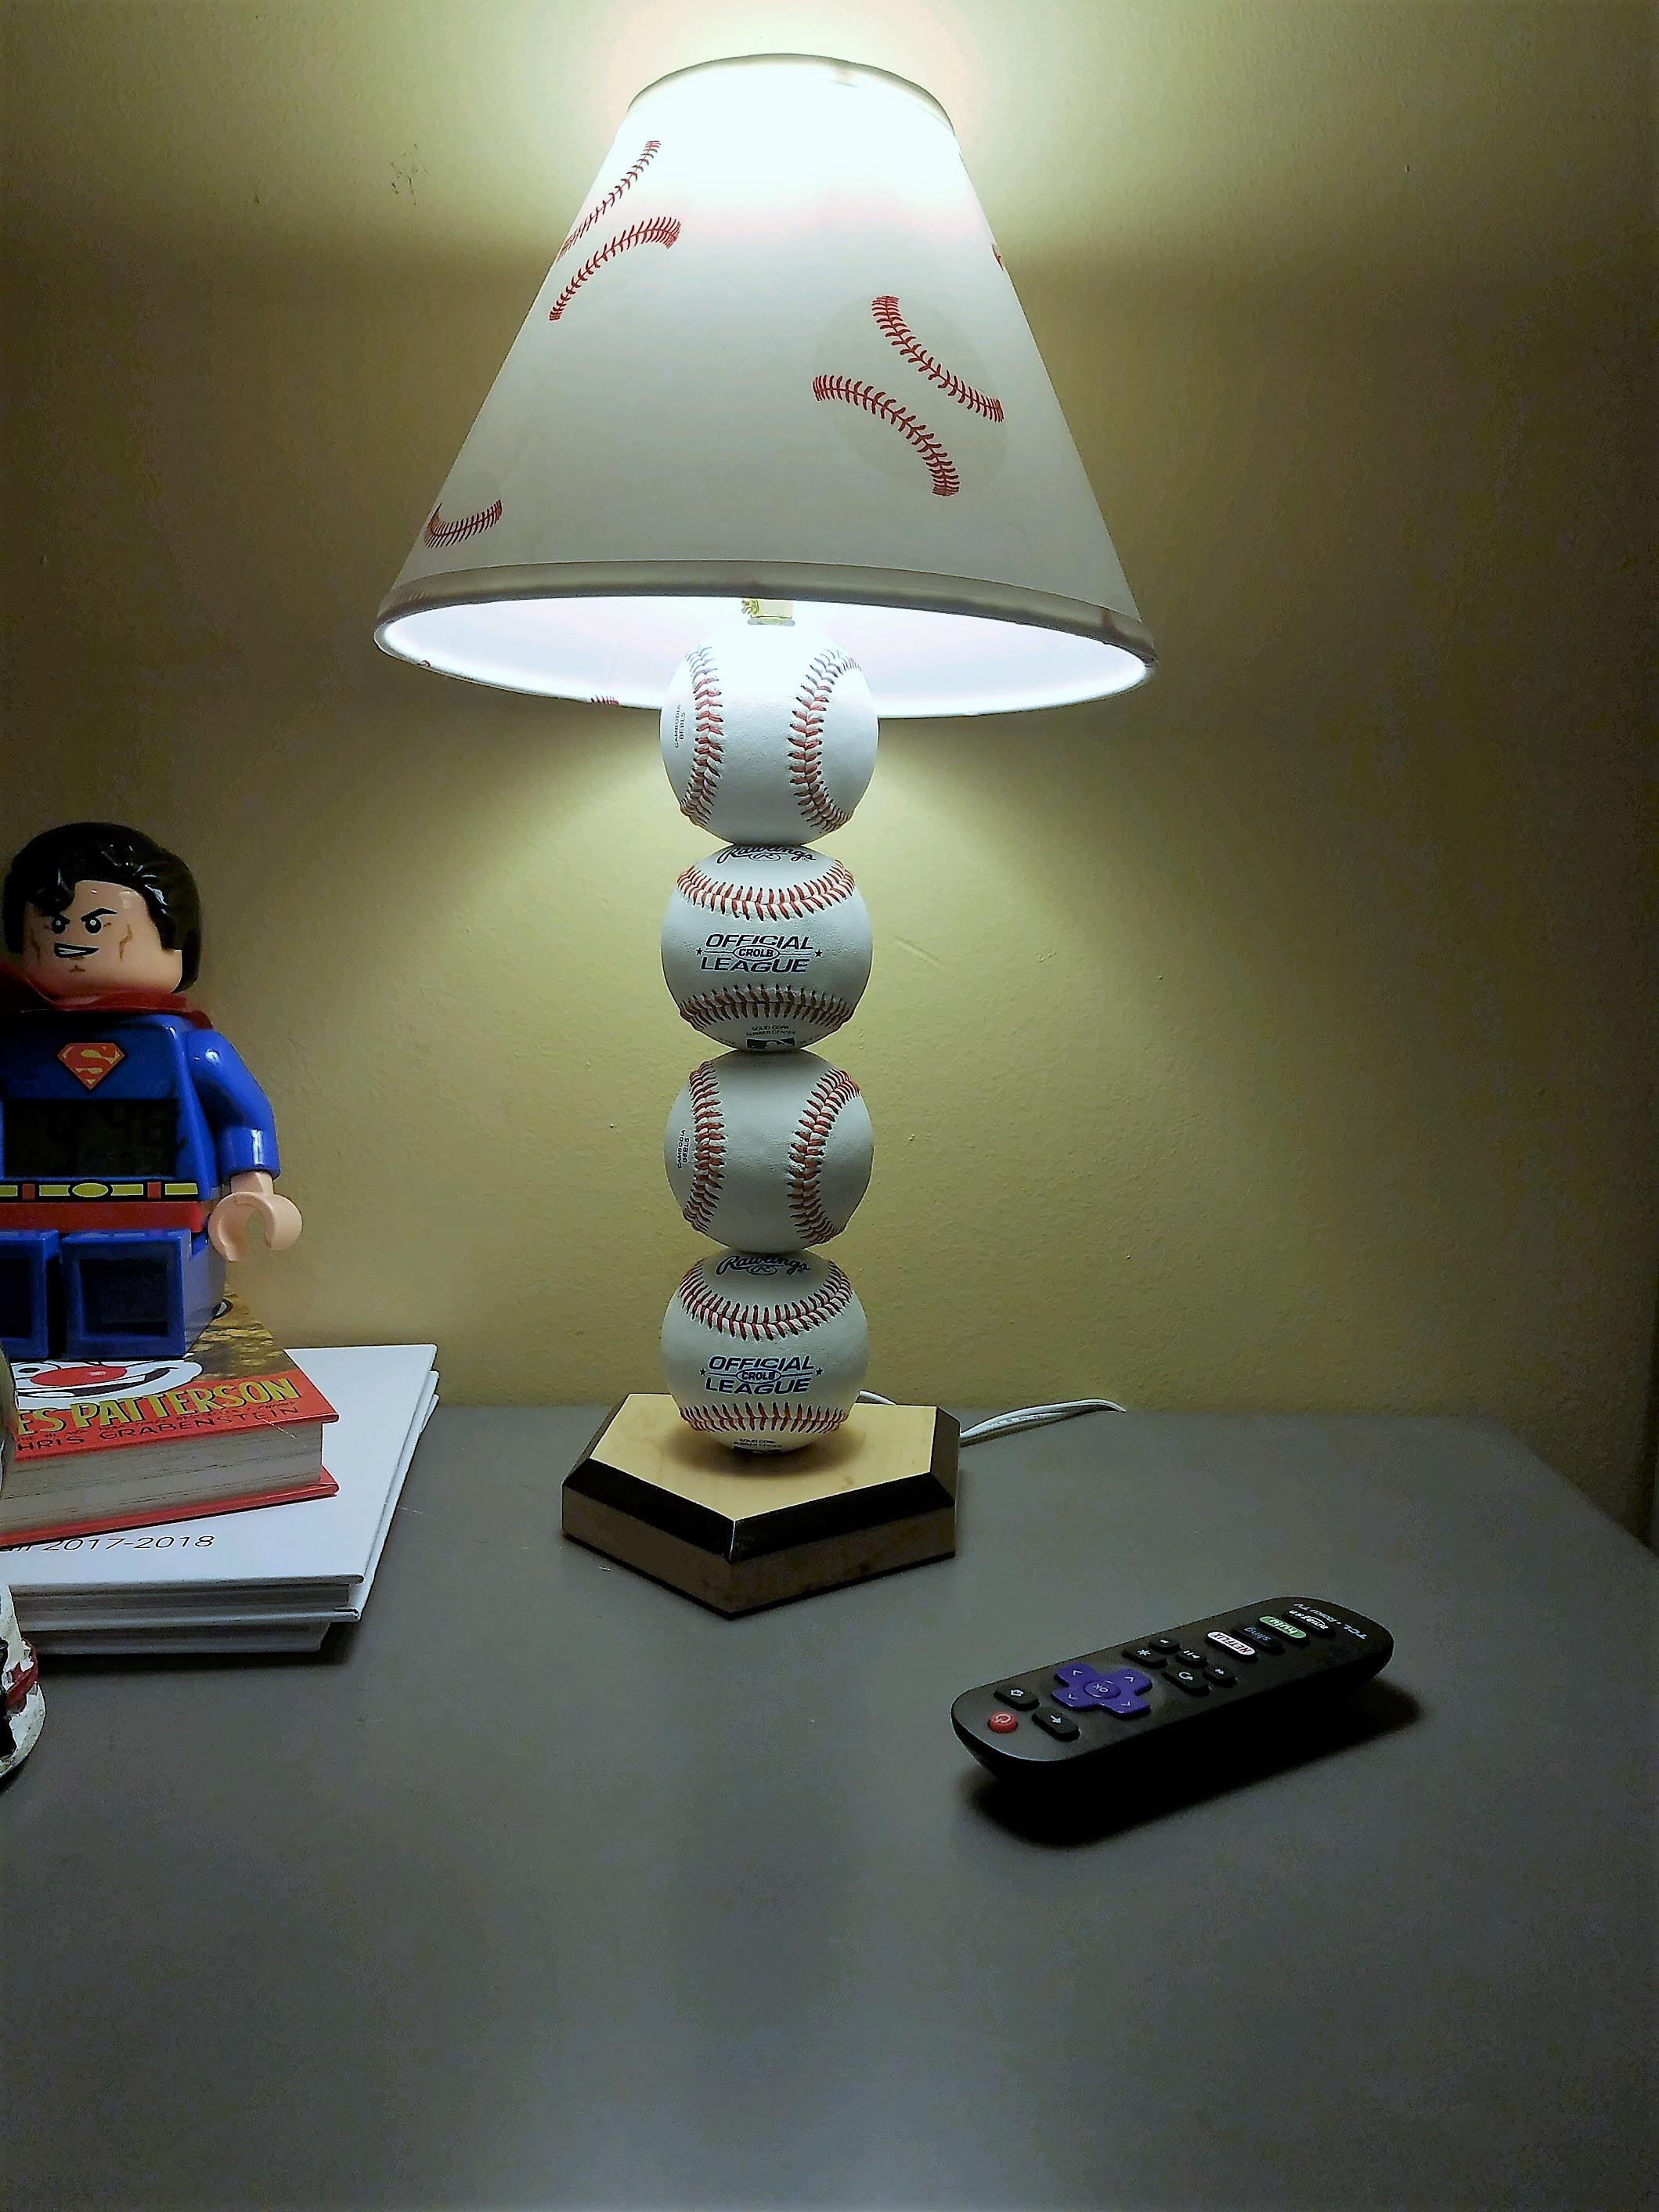 bellendier-bo-lamp.jpg